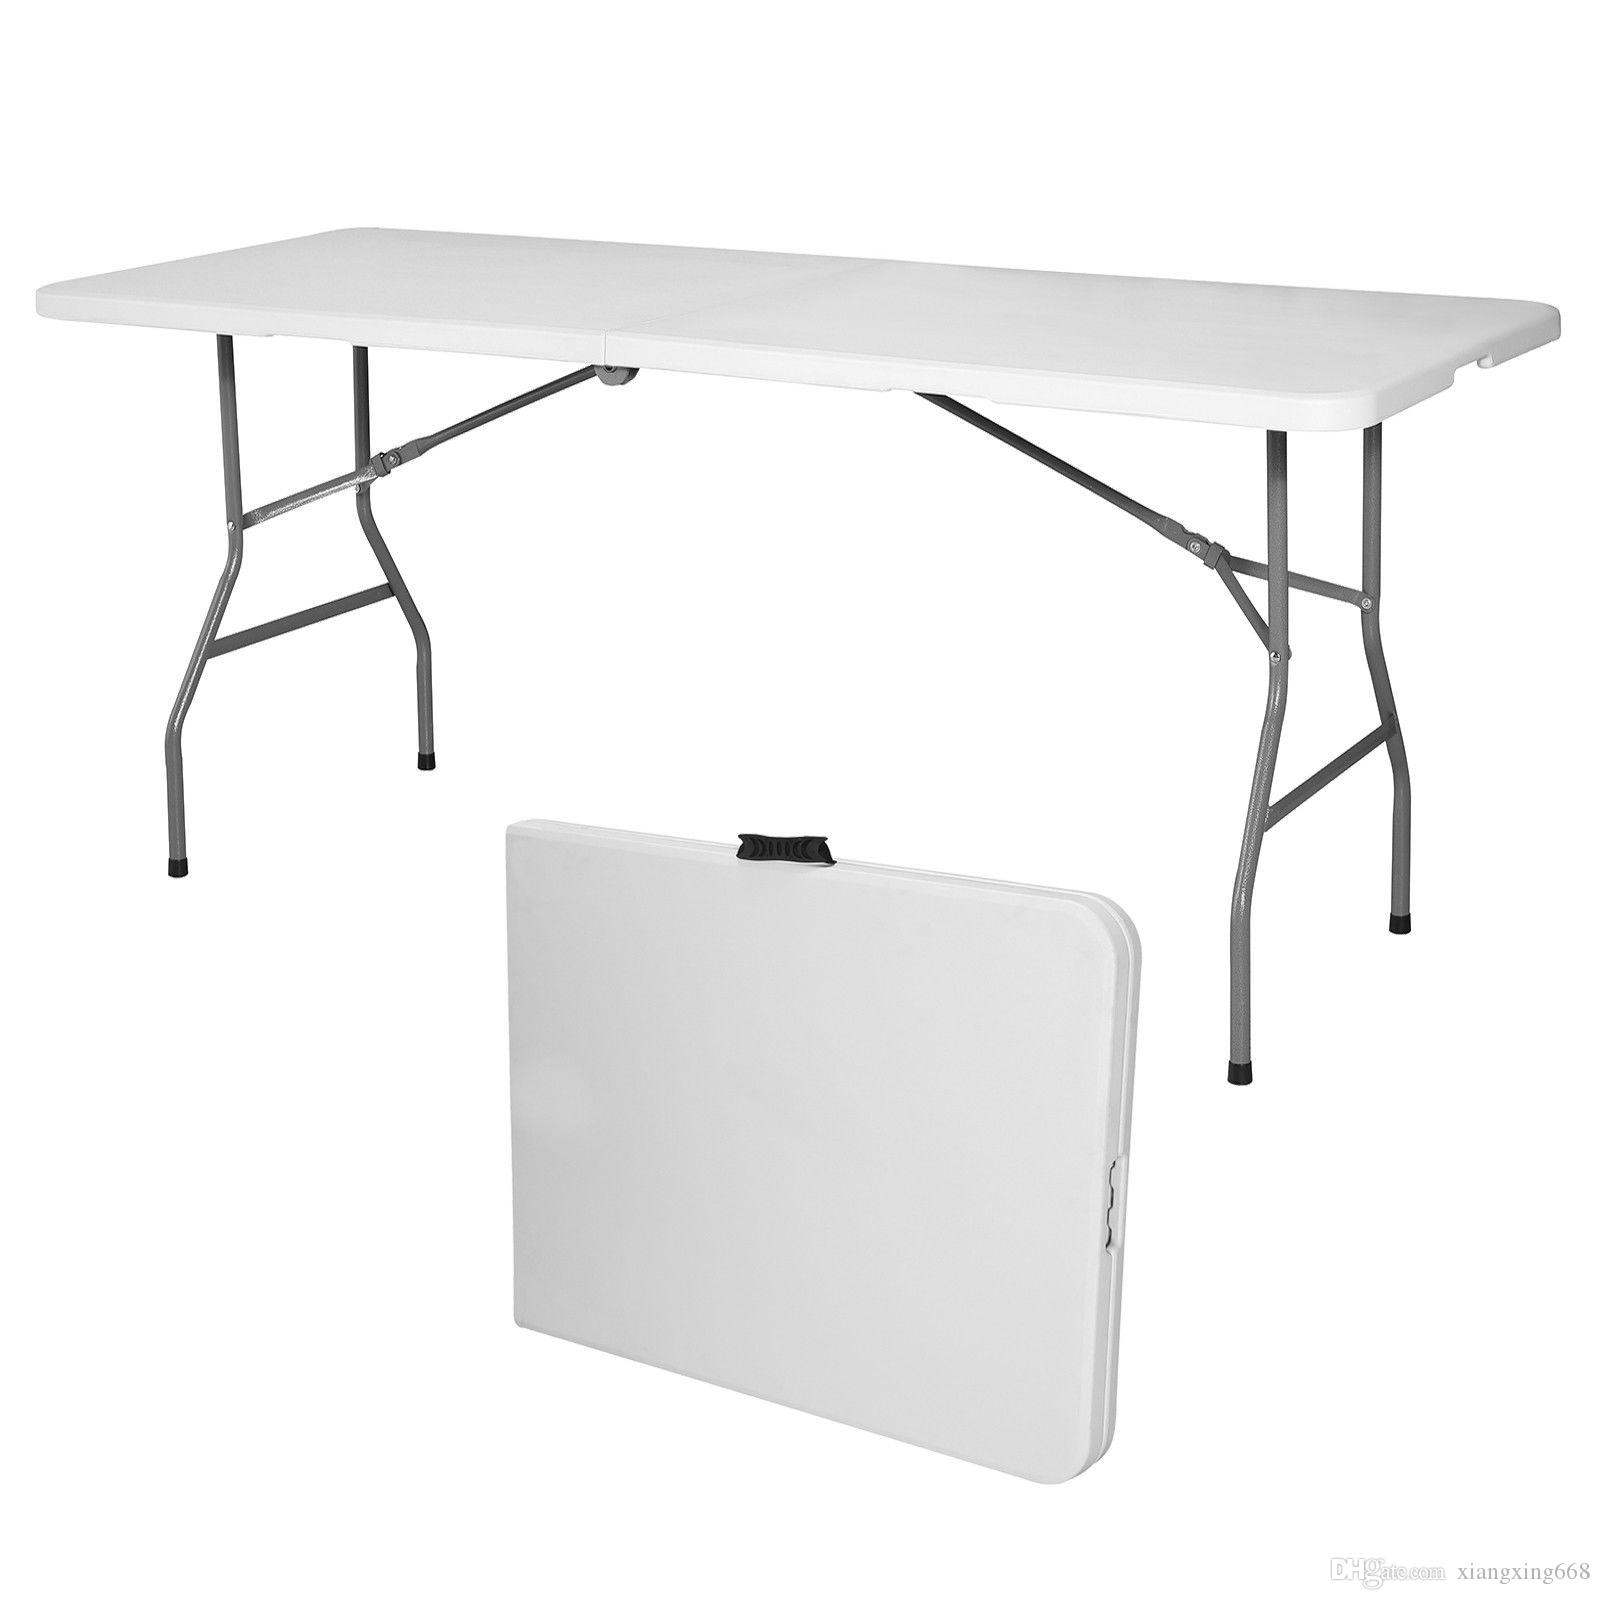 6u0027 Portable Folding Folding Table Indoor Outdoor Camp Party Picnic Plastic